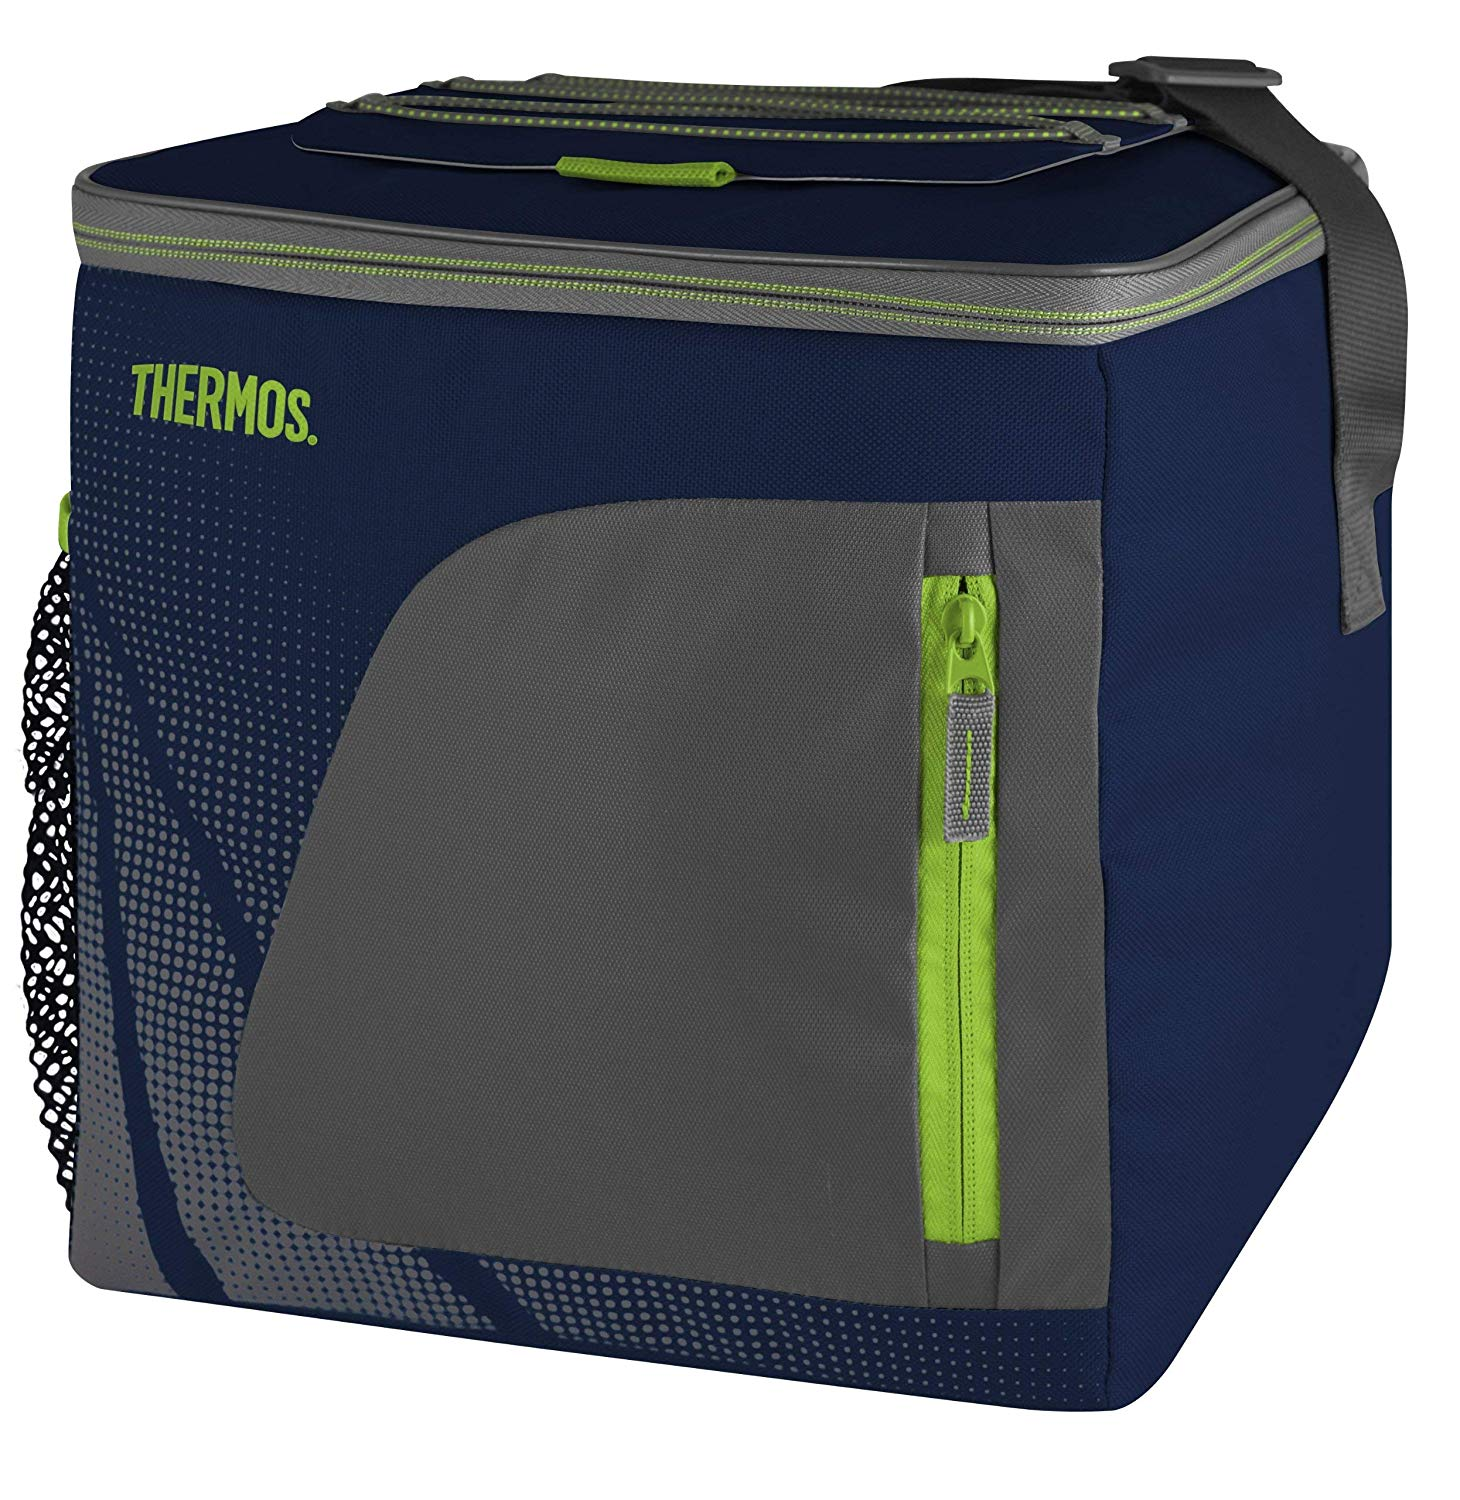 Thermos Radiance Cooler, 24 Can/16 L